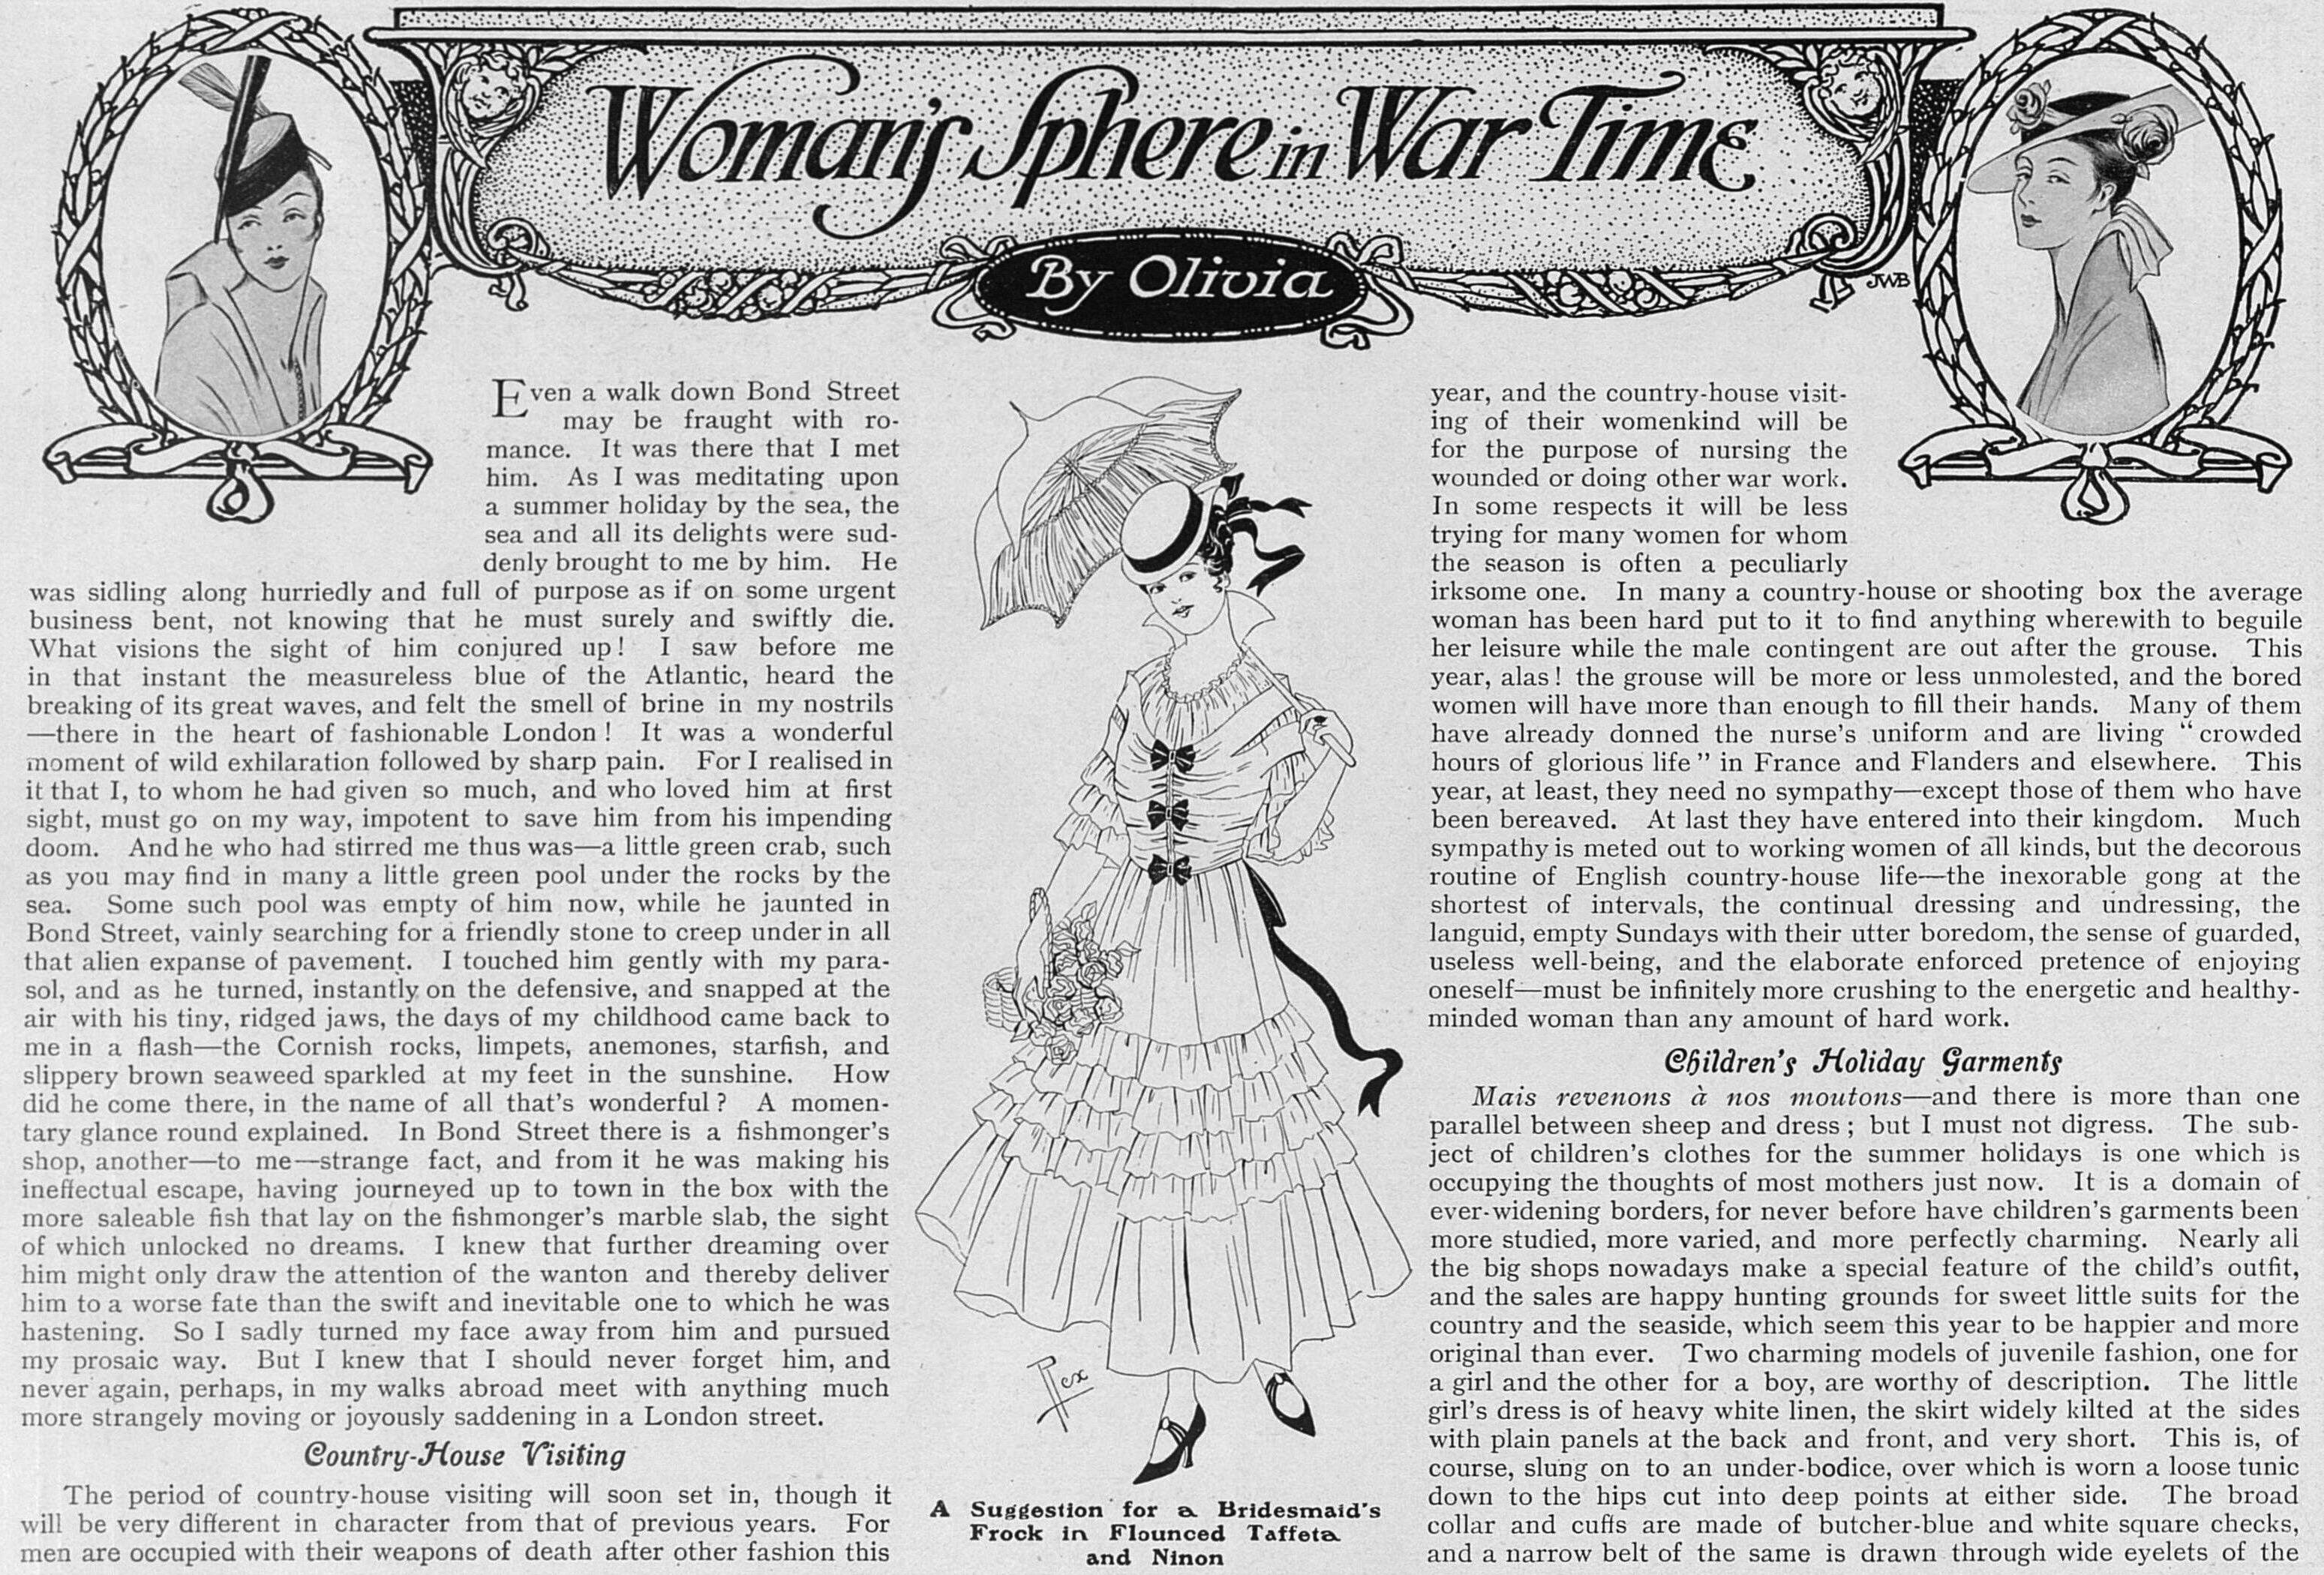 WomansSphereInWarTime_24Jul1915